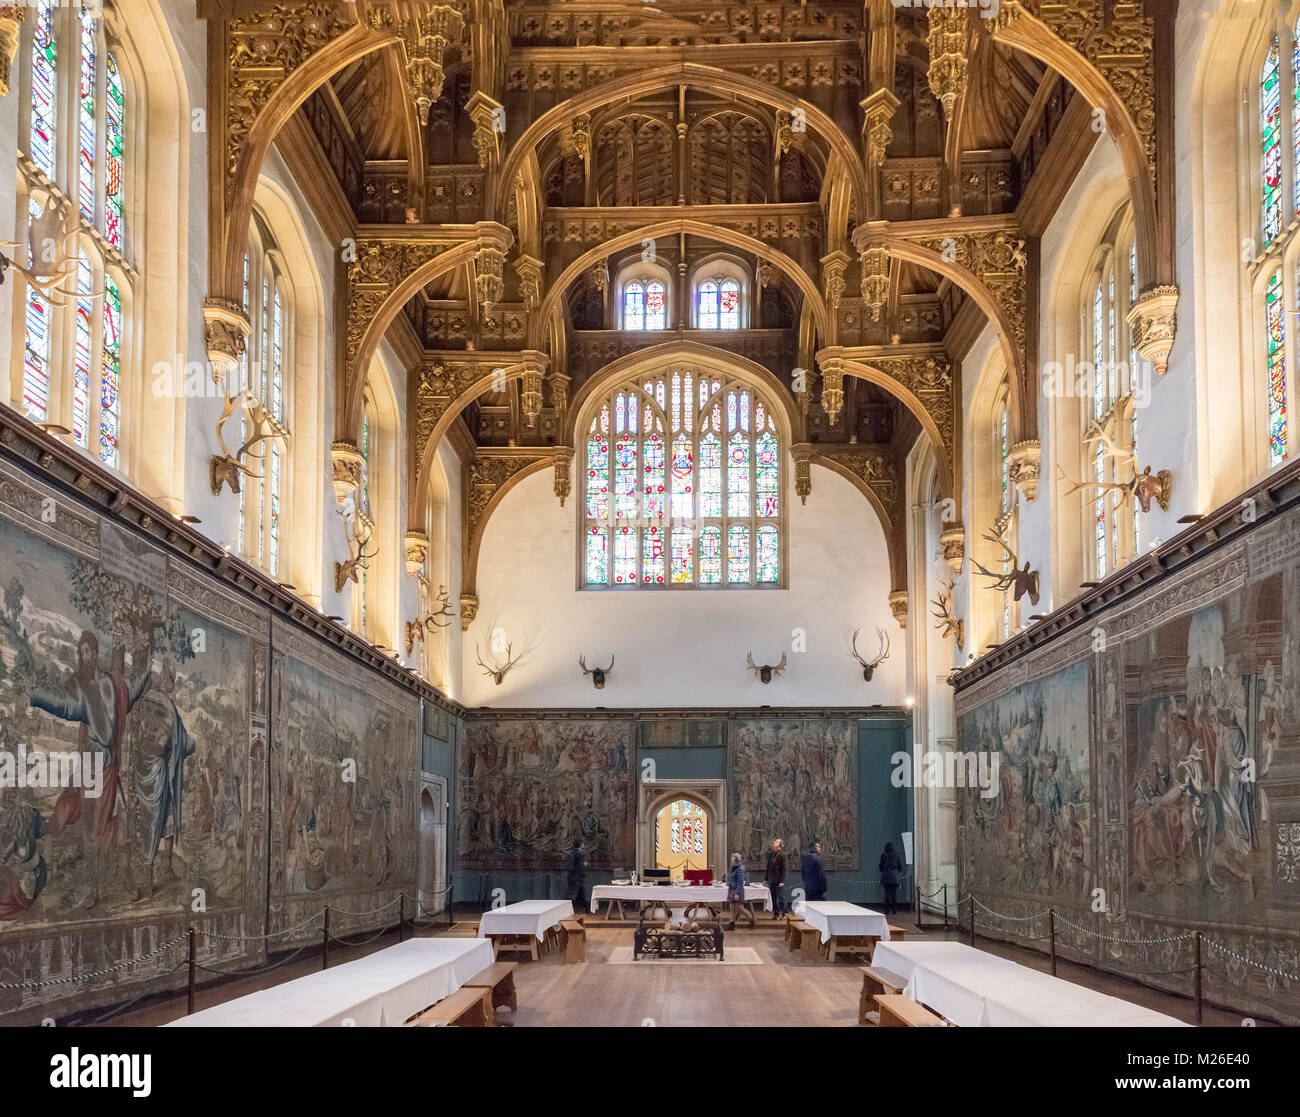 10 Fascinating Facts About Hampton Court Palace – Britain ...